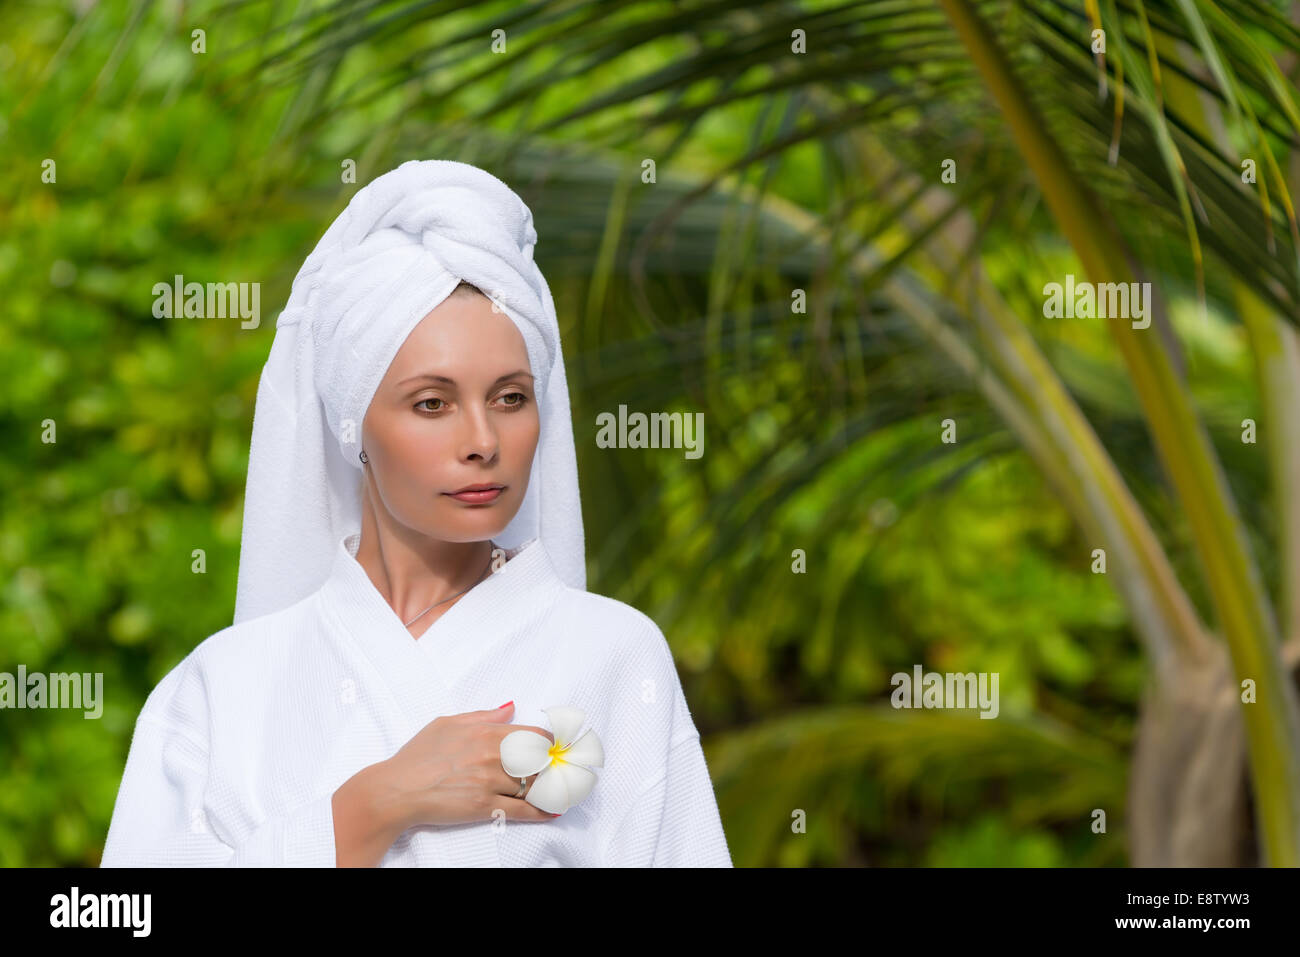 health, spa and beauty concept - beautiful woman in towel - Stock Image